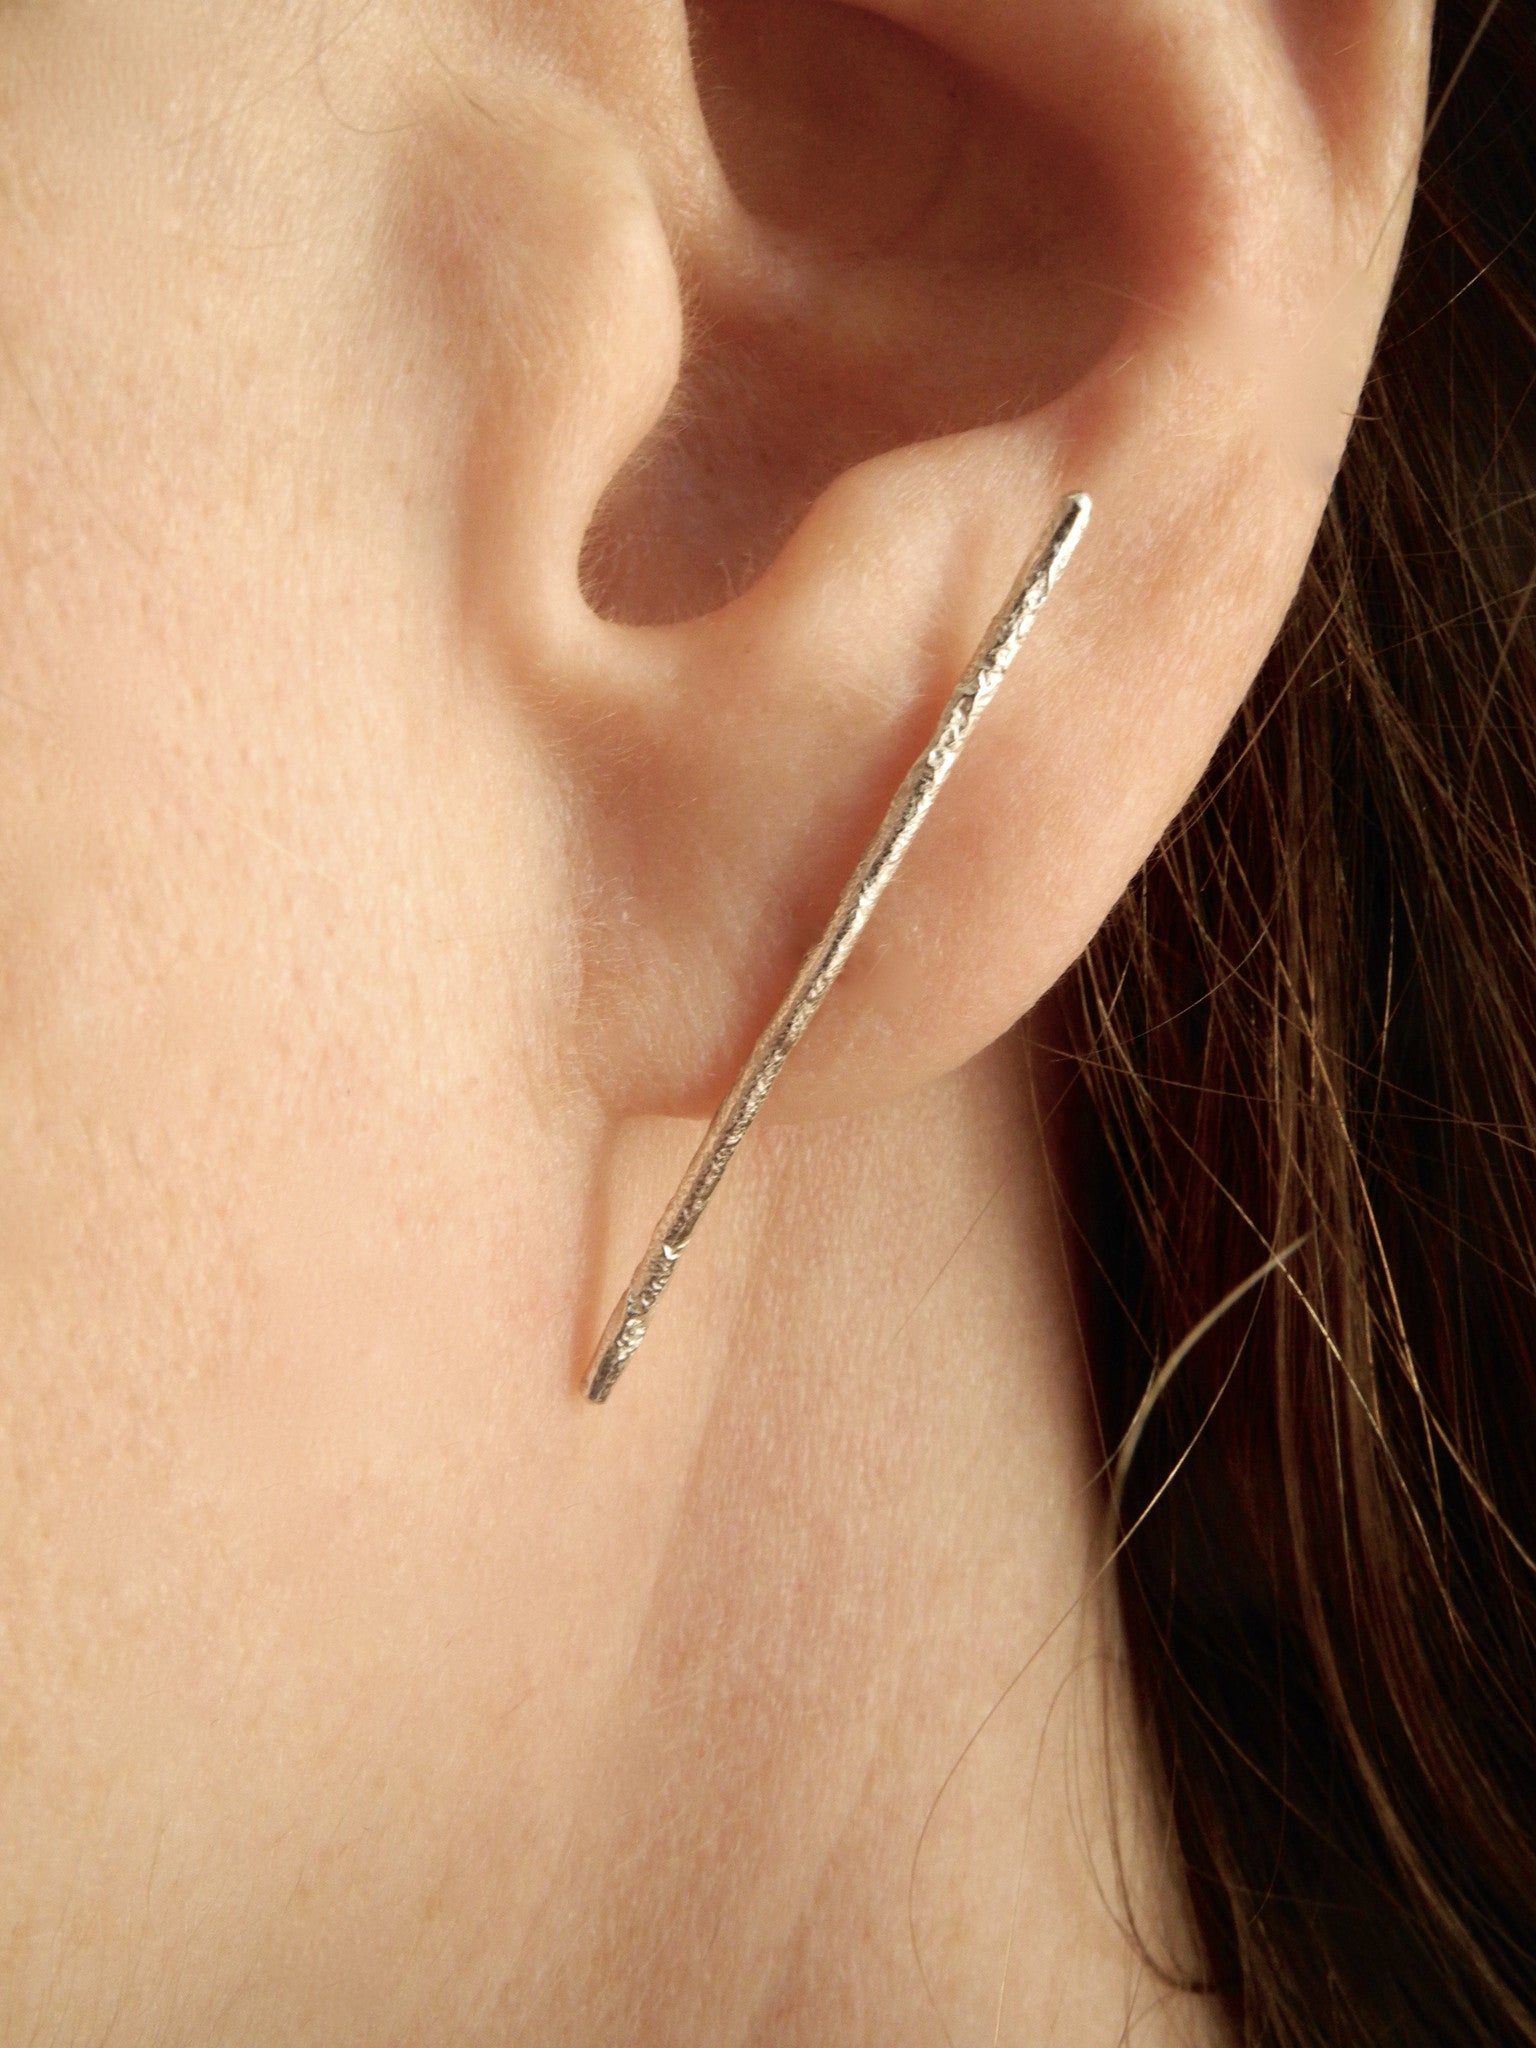 stick and stone stud earrings